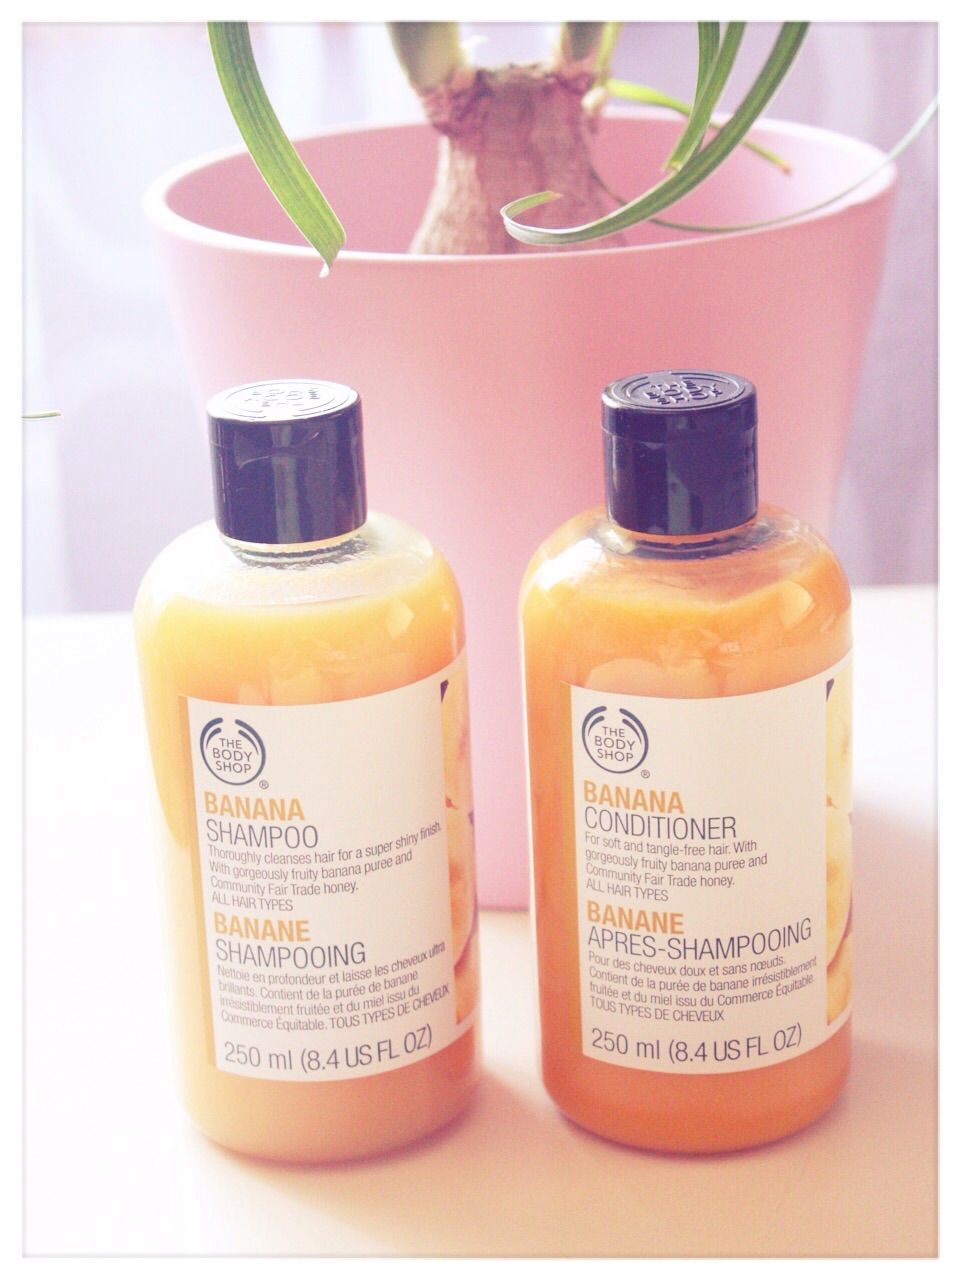 The Body Shop Banana shampoo banana conditioner